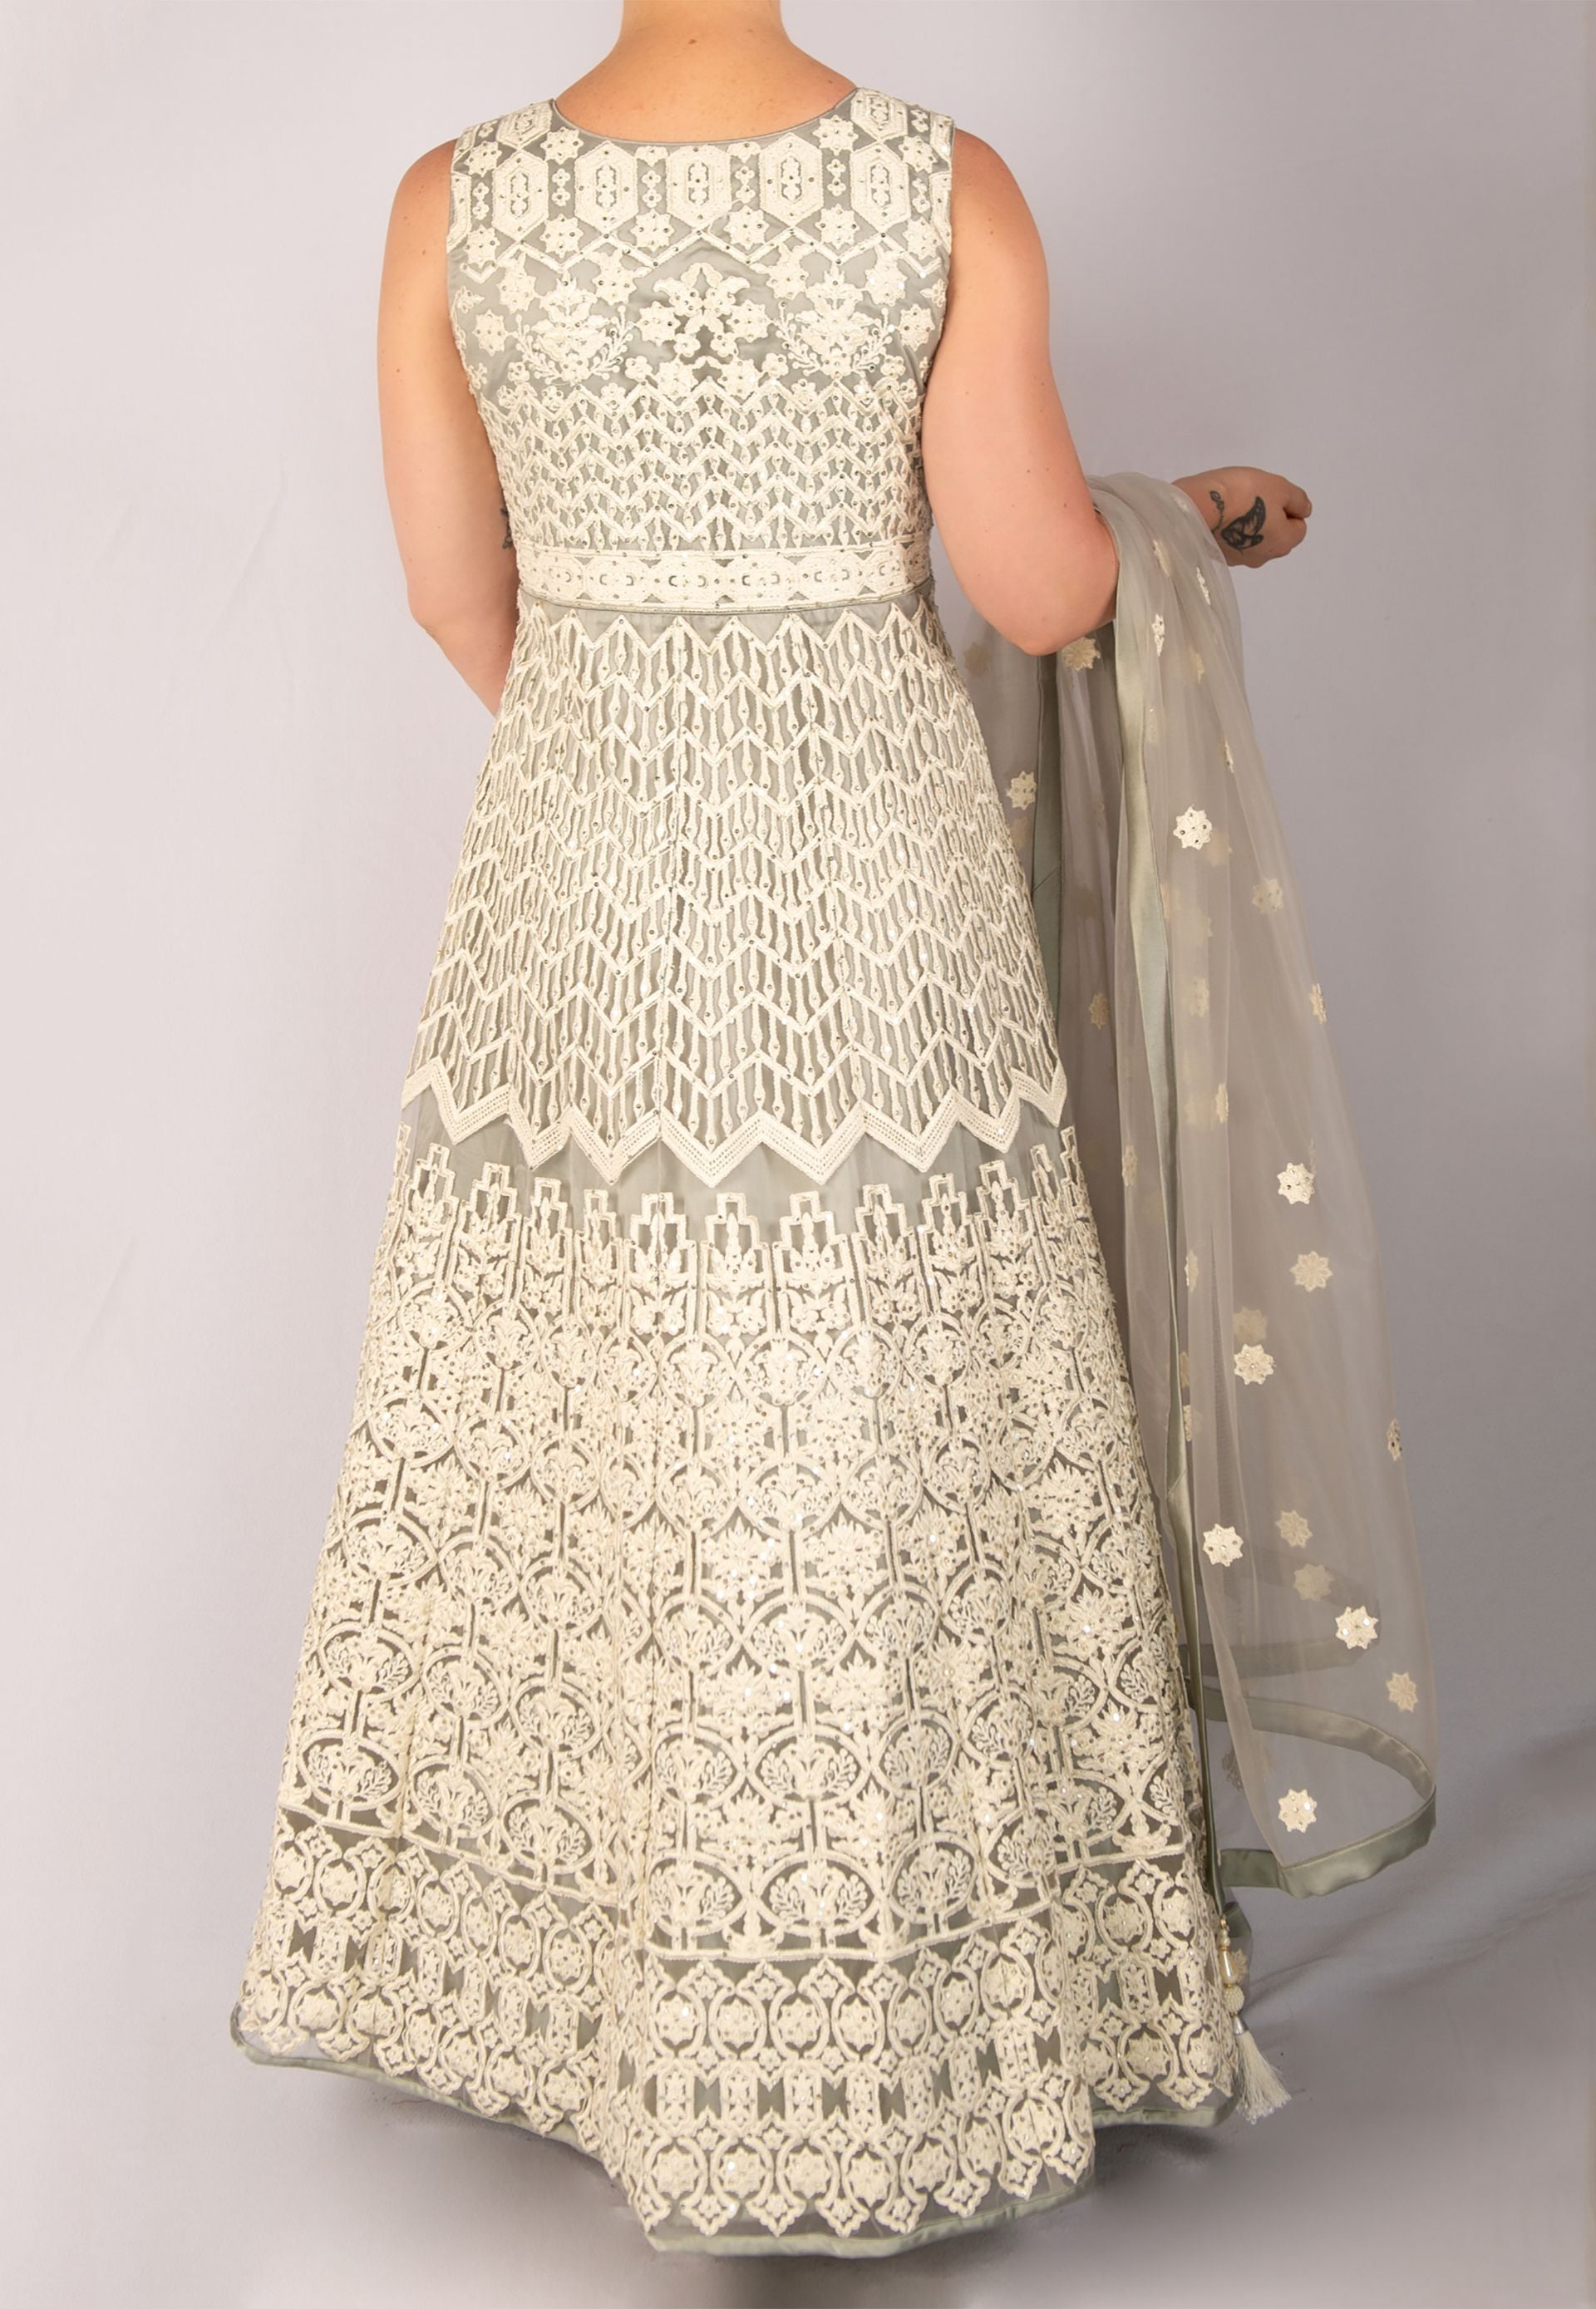 GRAY AND OFF-WHITE ANARKALI